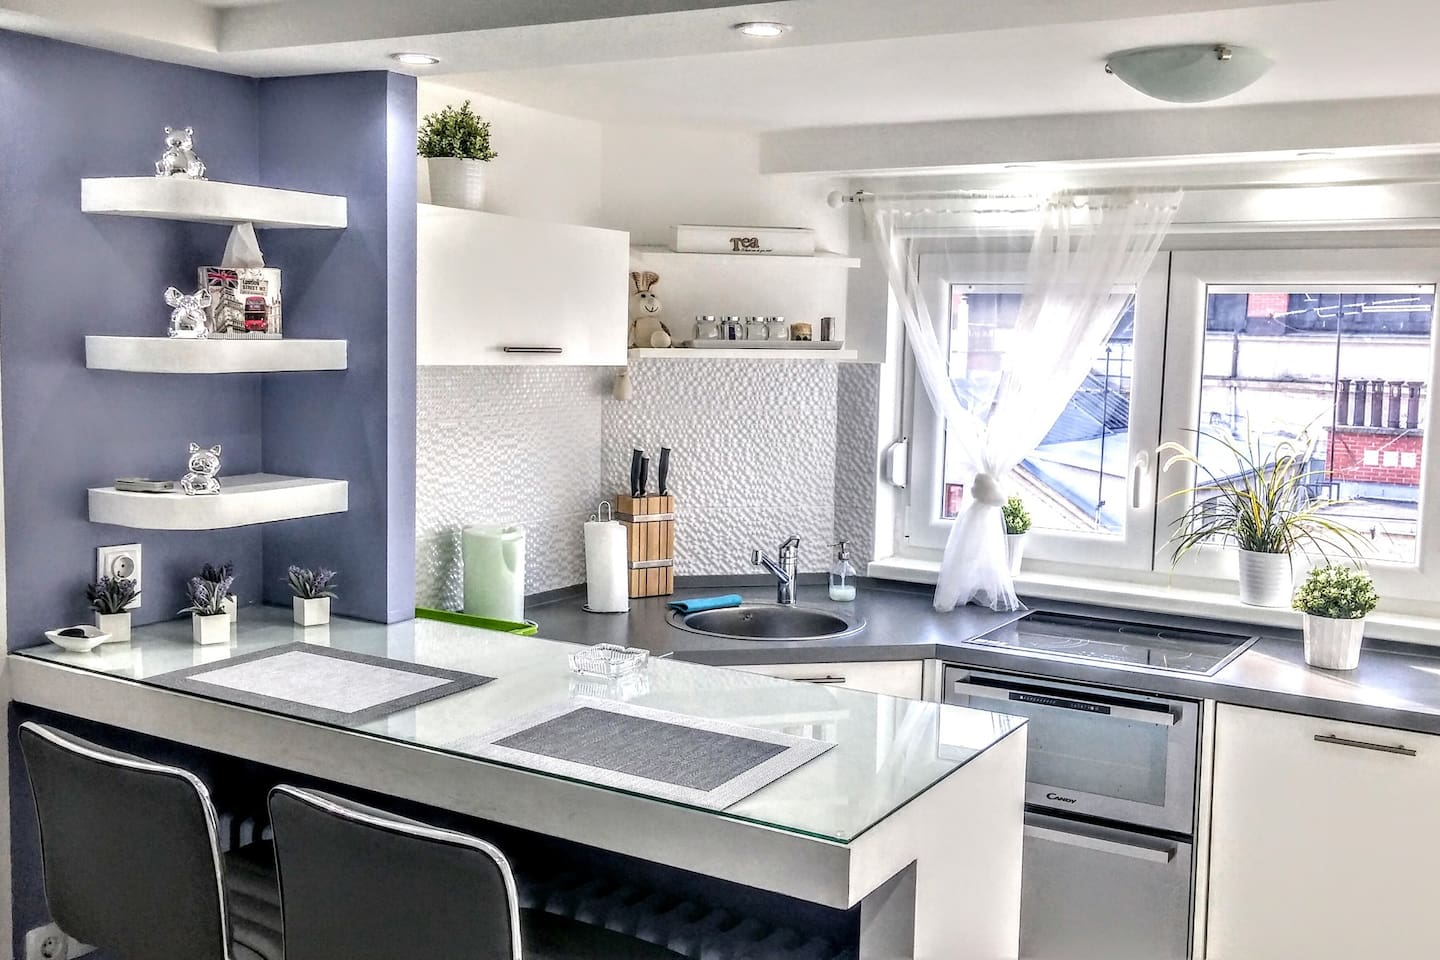 Fully equipped kitchen full of natural light